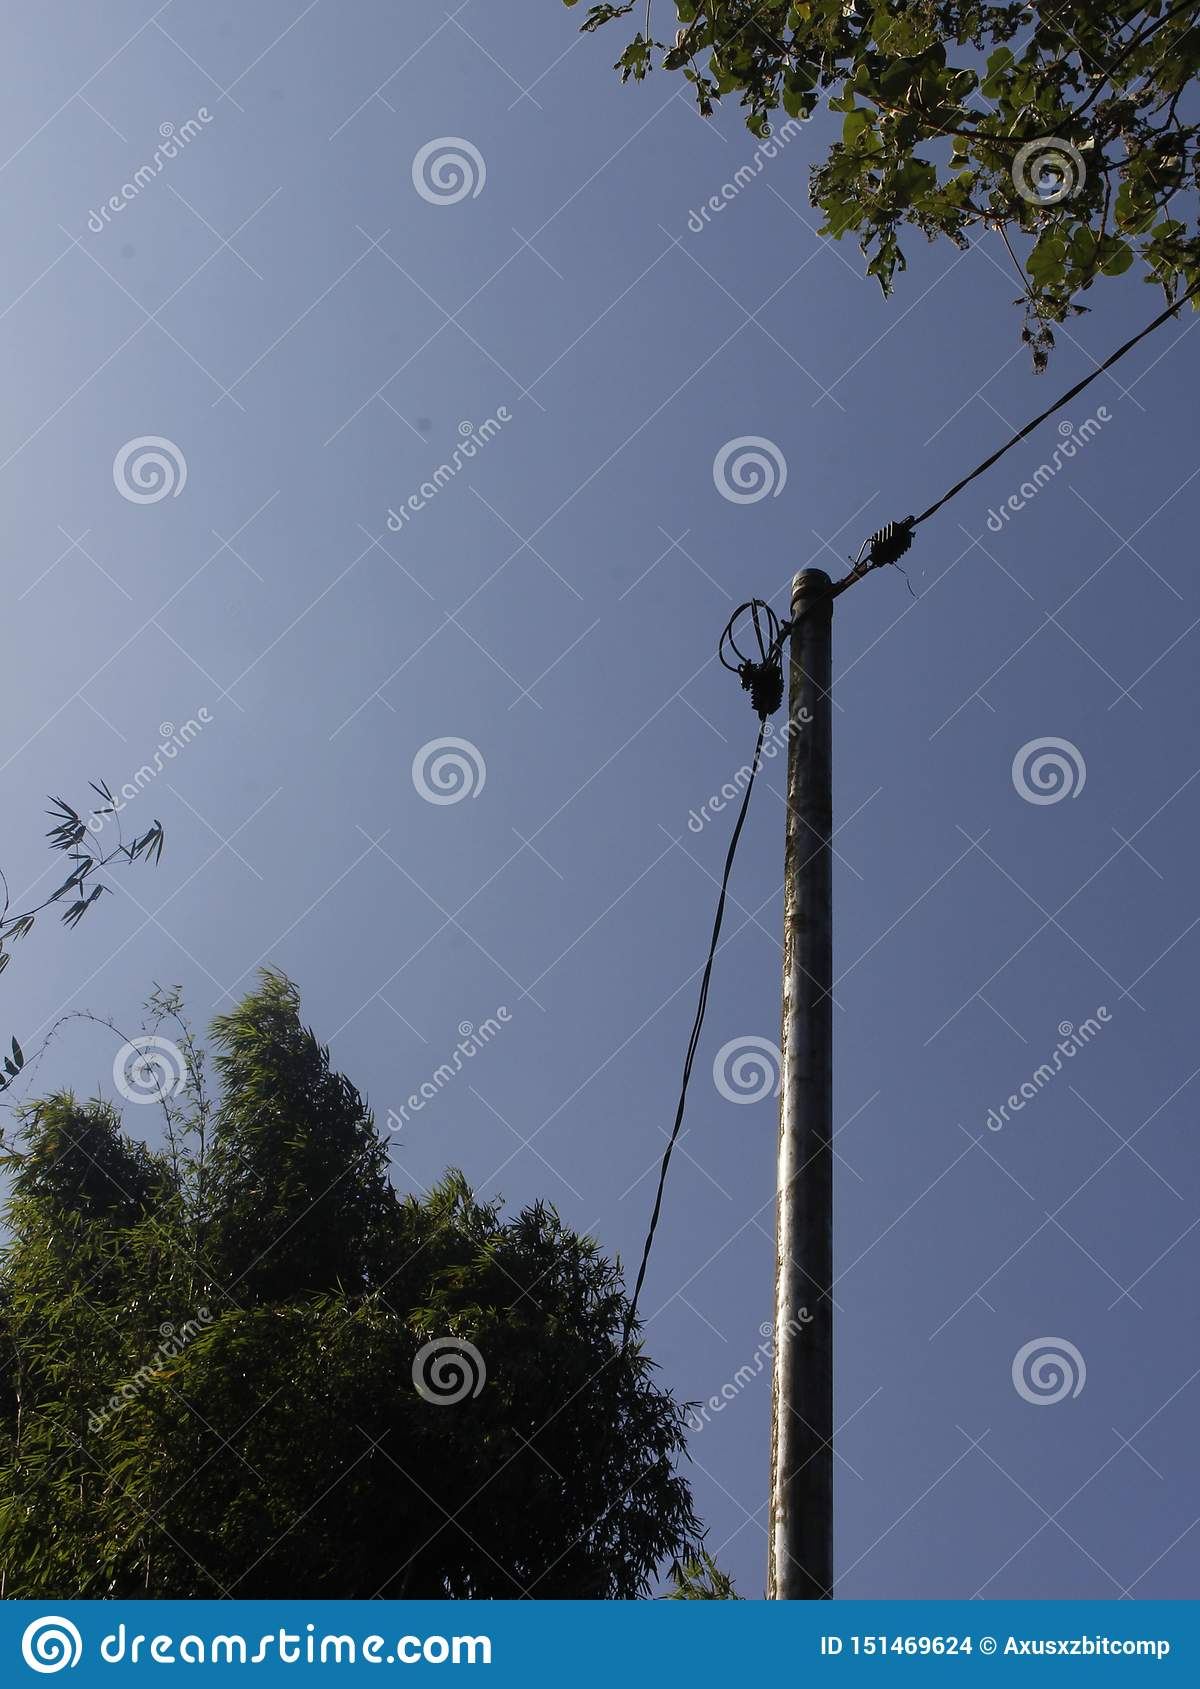 Minimalism Style active Electric Pole with a cables